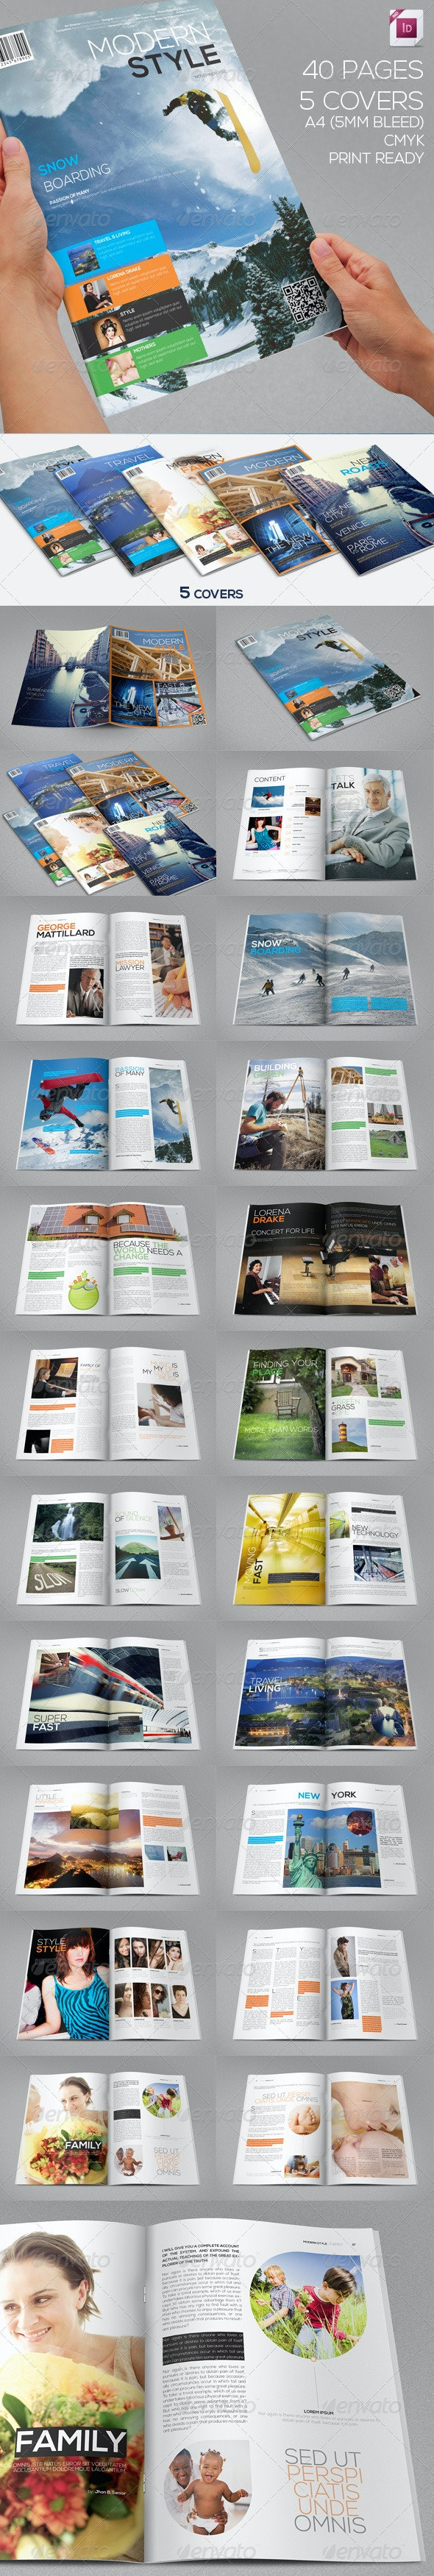 Modern Style Magazine | 40 Pages | 5 Covers - Magazines Print Templates